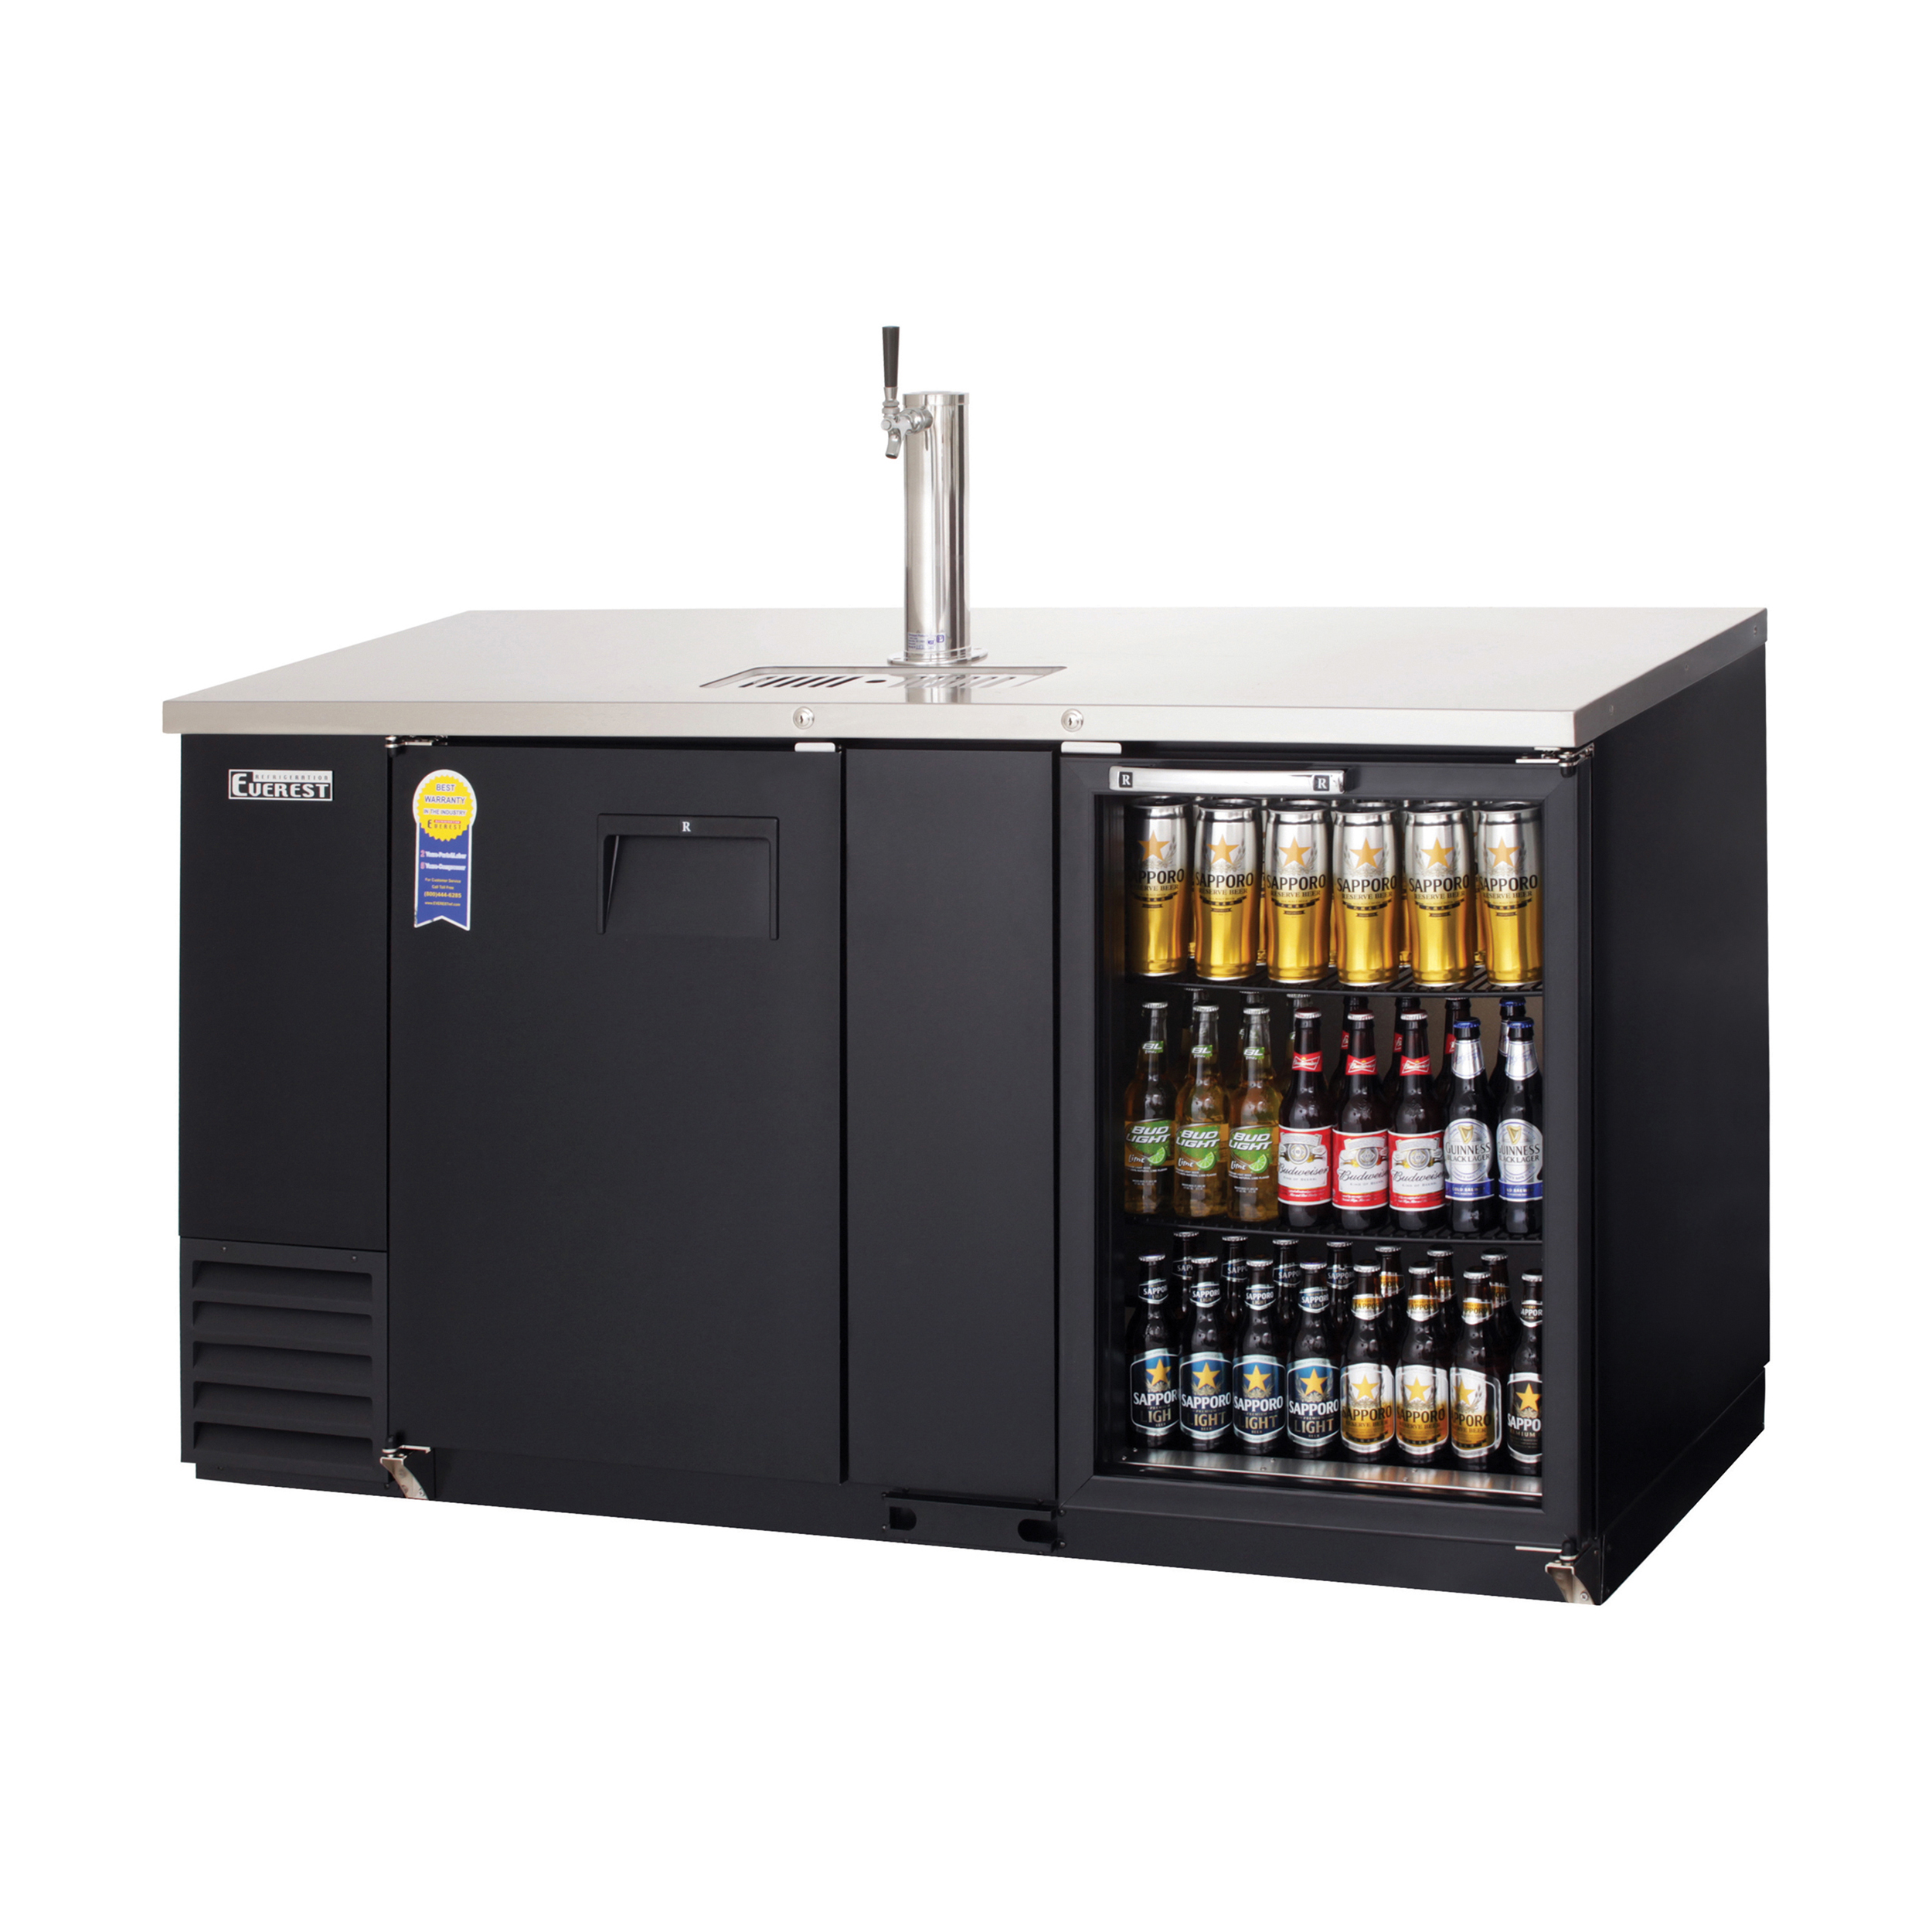 Everest Ebd3 Bbg 68 2 Door Solid Glass Combo Back Bar Amp Direct Draw Keg Refrigerator Mega Restaurant Supply